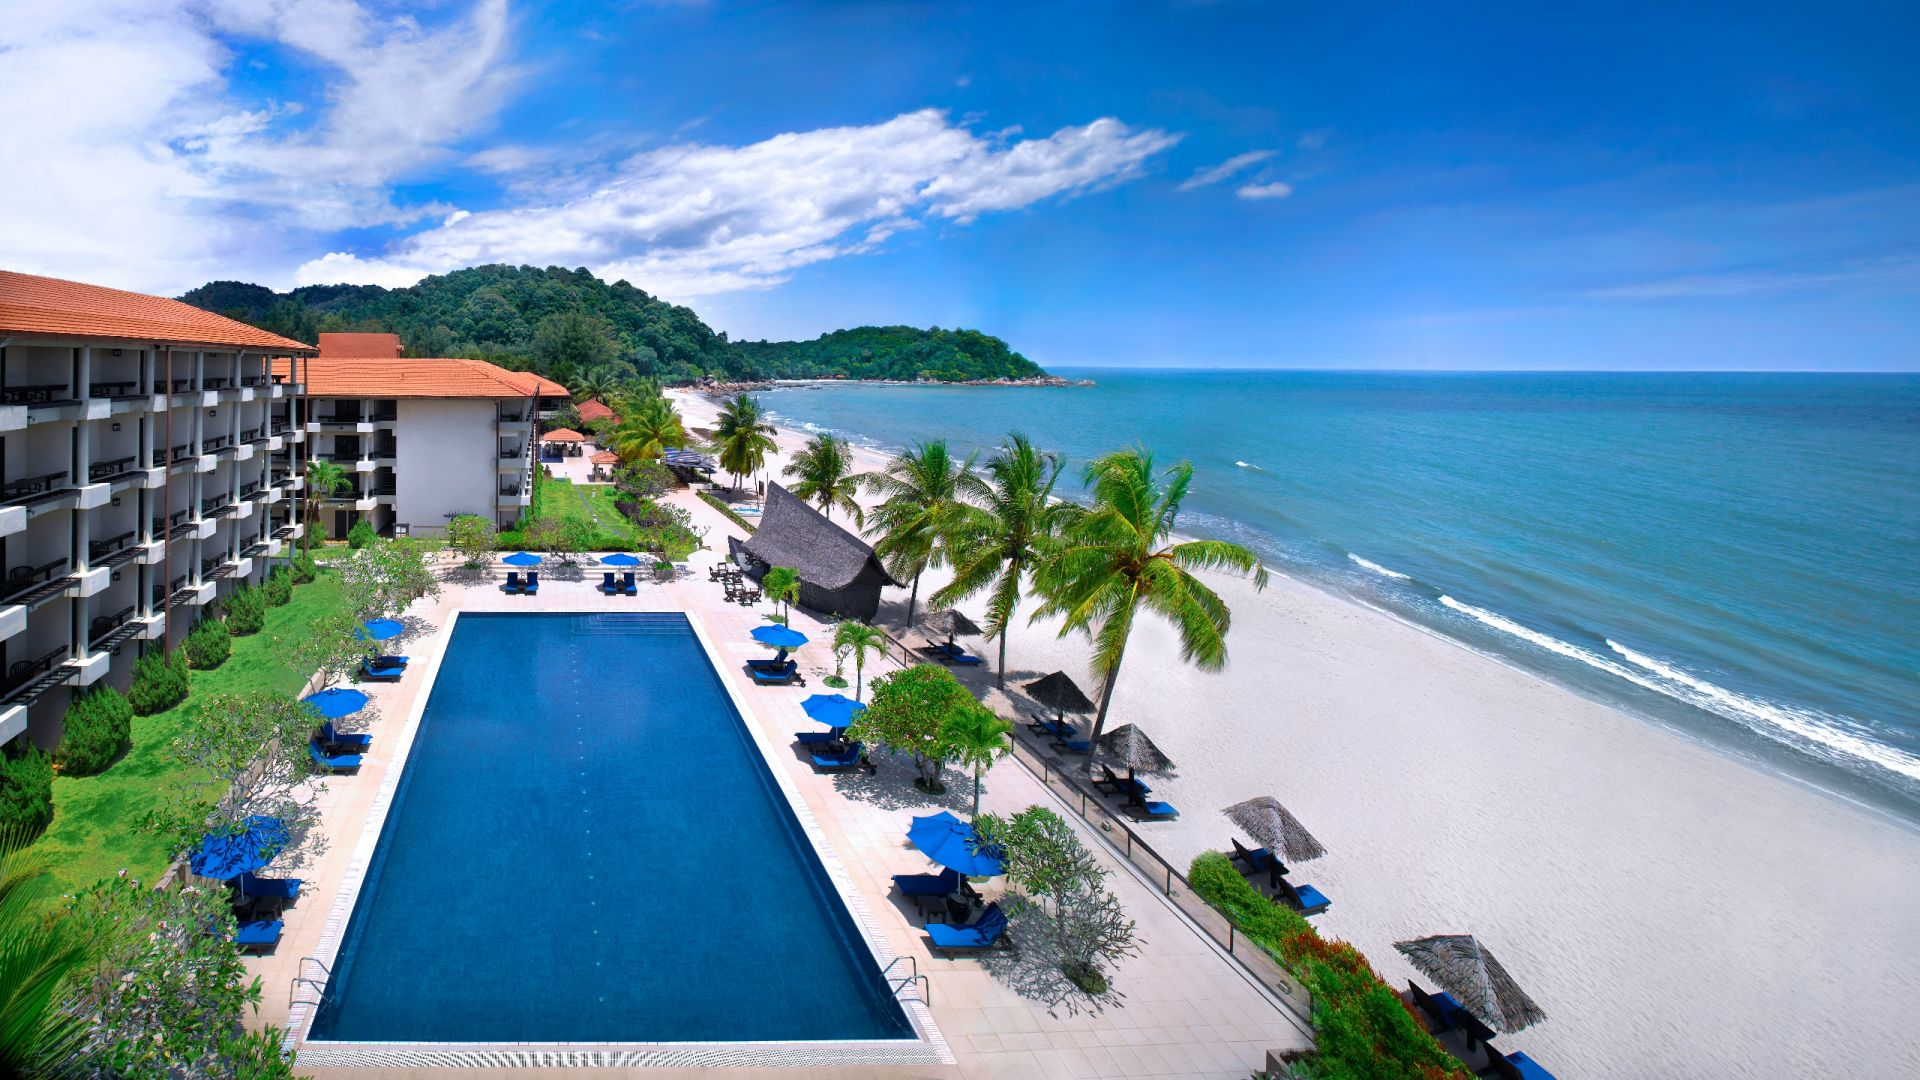 Hyatt Regency Kuantan Resort beach front